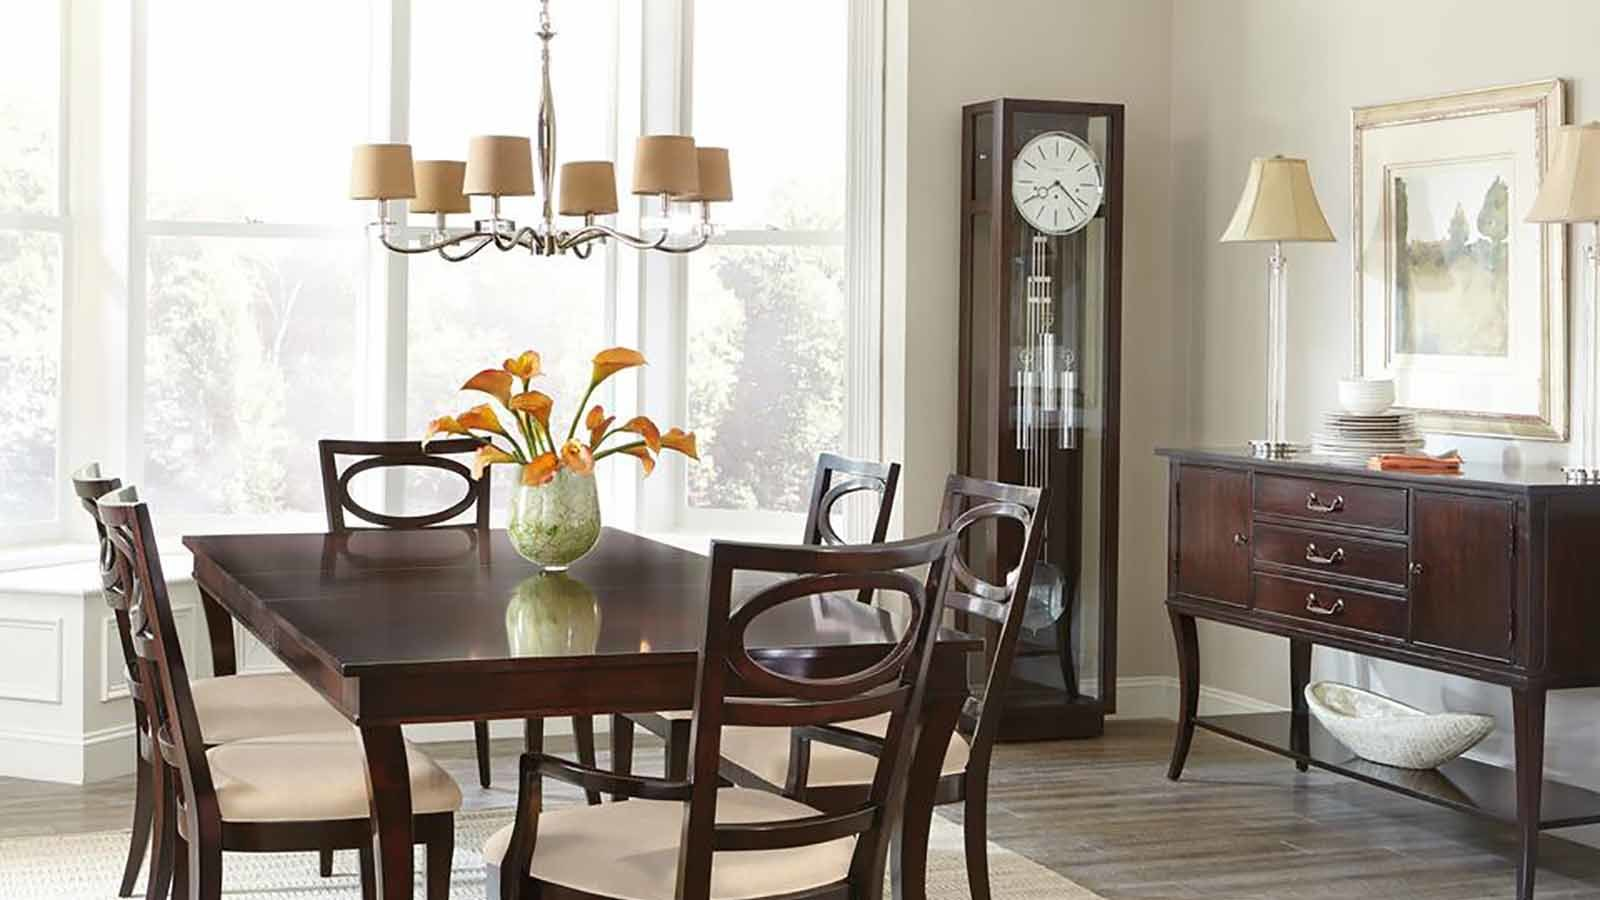 We Carry One Of The Largest Selections Of Clocks Of Any Furniture Store In  The Country And Offer Experienced Help To Help You Find The Perfect Clock.